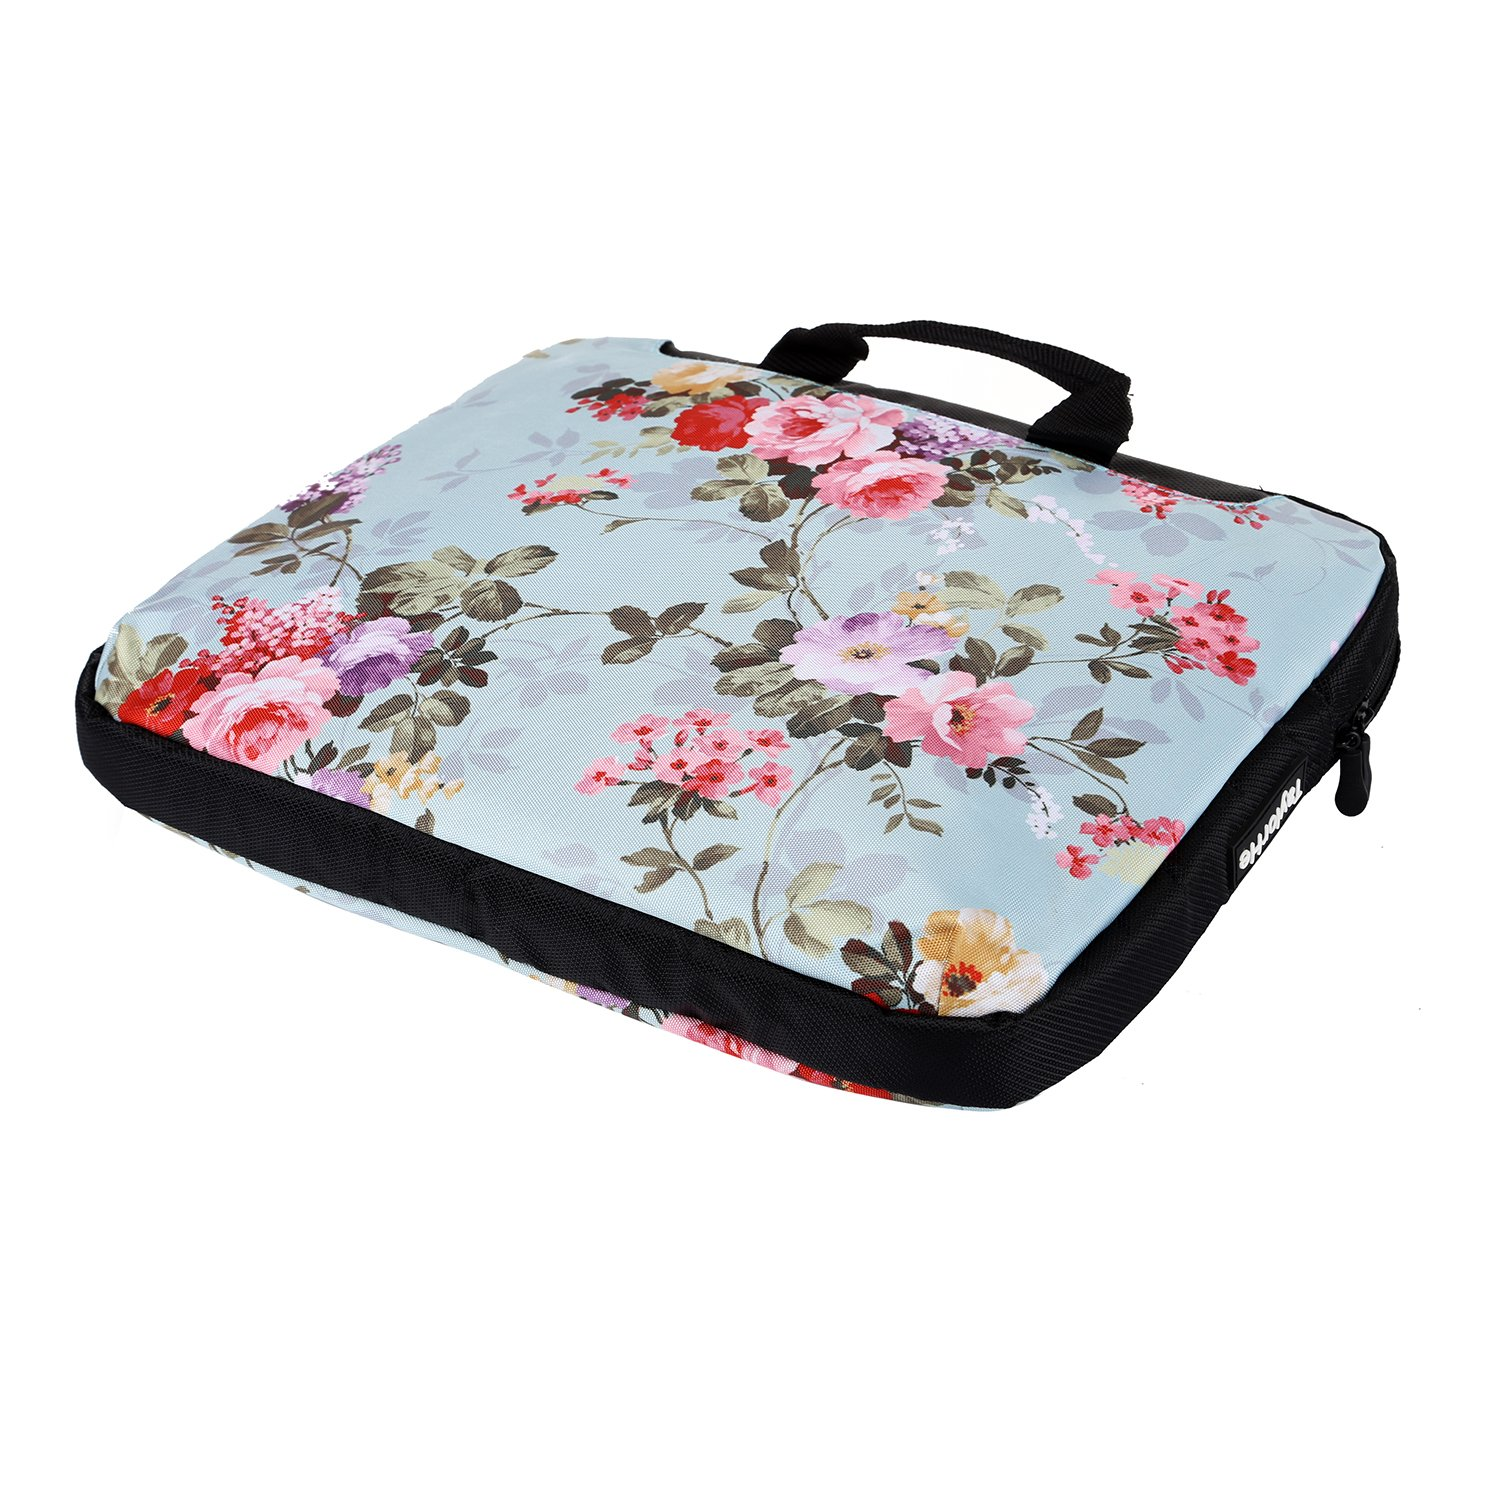 Side Pockets Handles and Detachable Strap Pink Butterflies TaylorHe 15.6 inch 15 inch 16 inch Hard Wearing Nylon Laptop Carry Case Colourful Laptop Shoulder Bag with Patterns